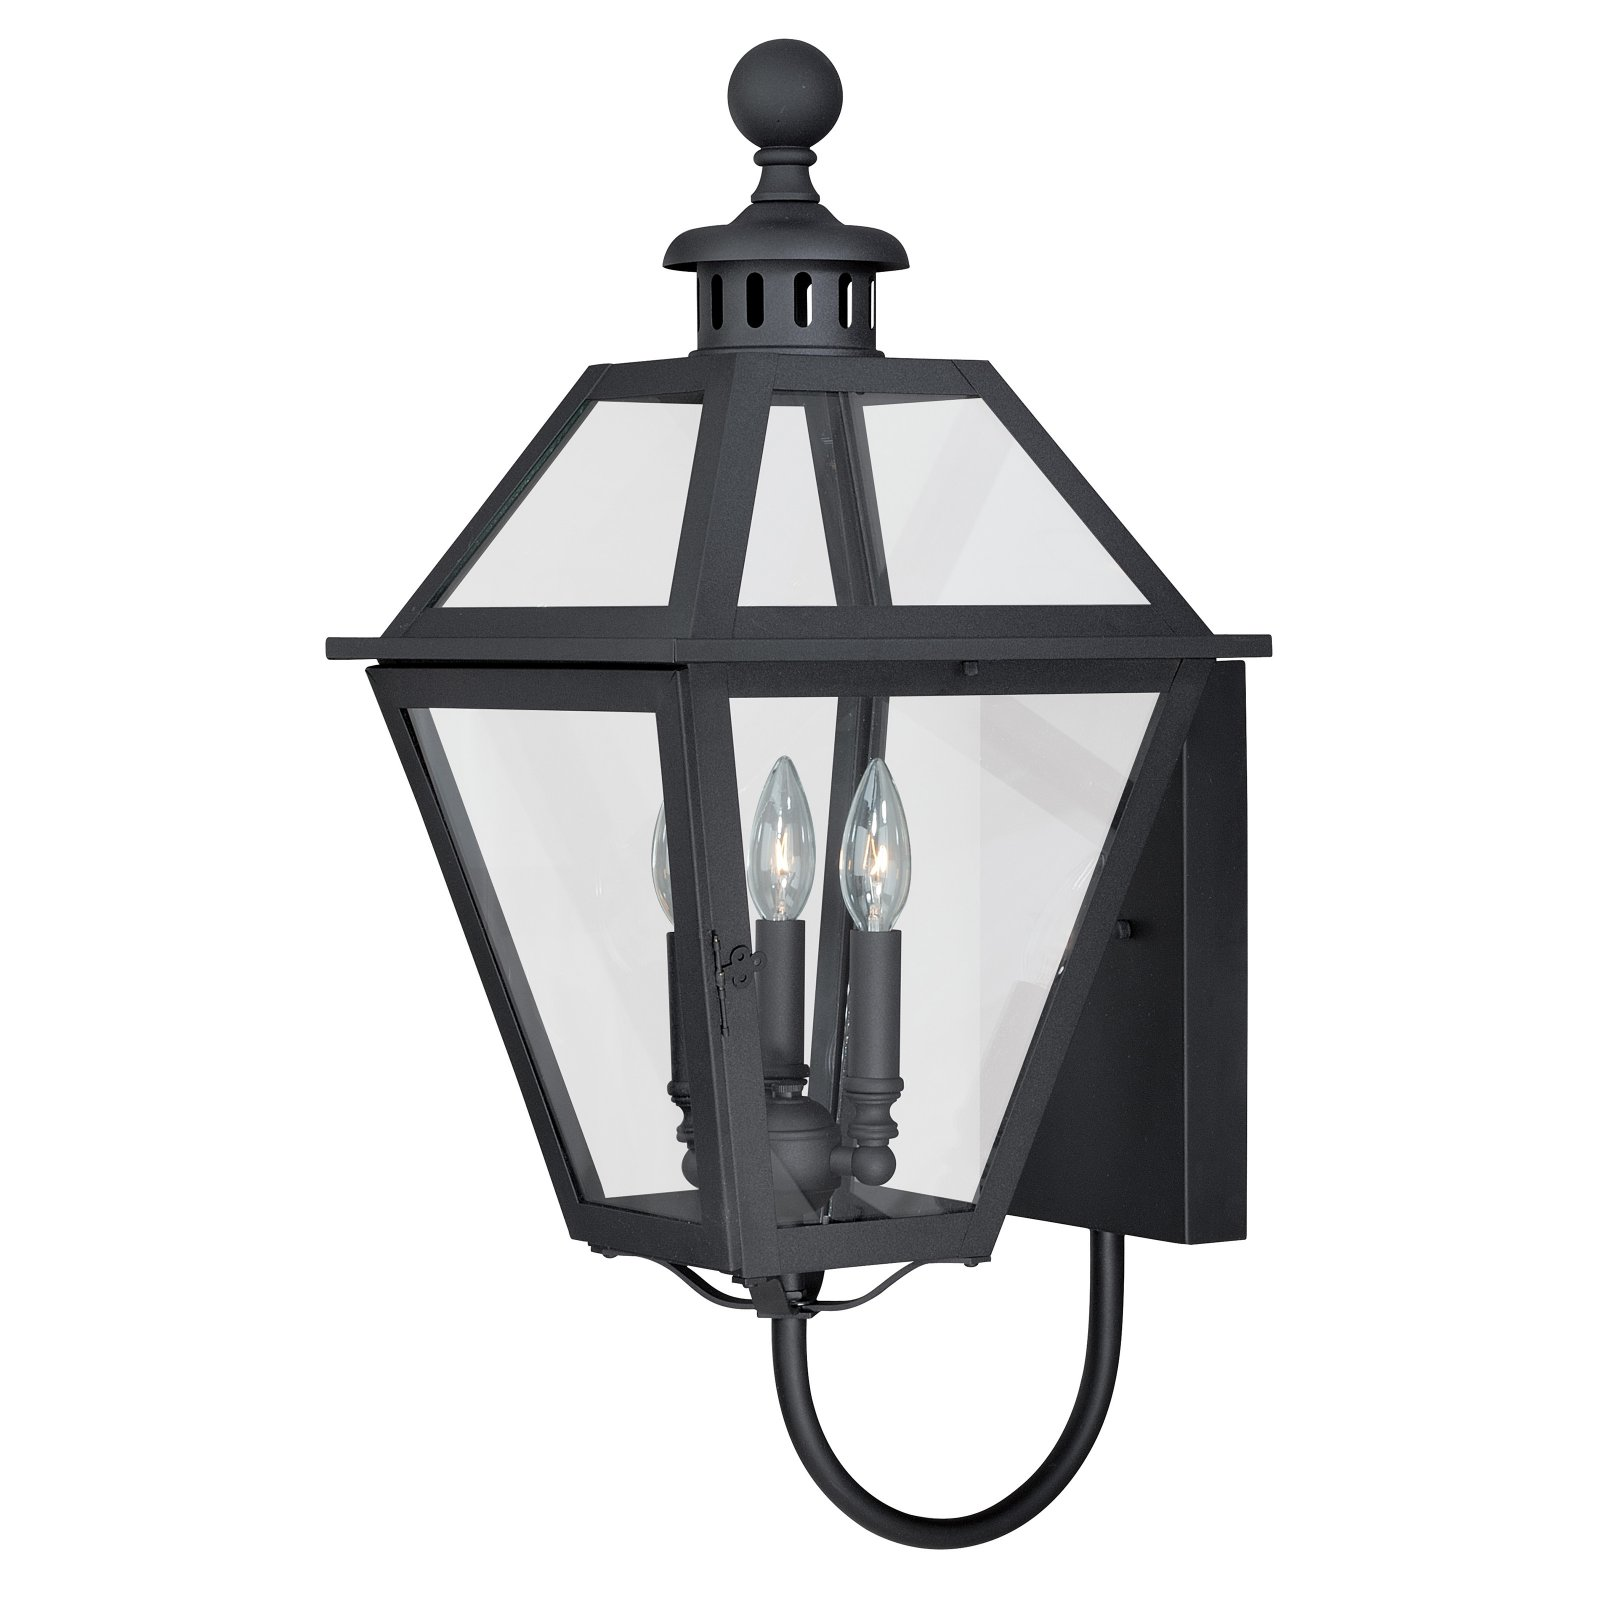 Vaxcel Nottingham T0079/80 Outdoor Wall Sconce